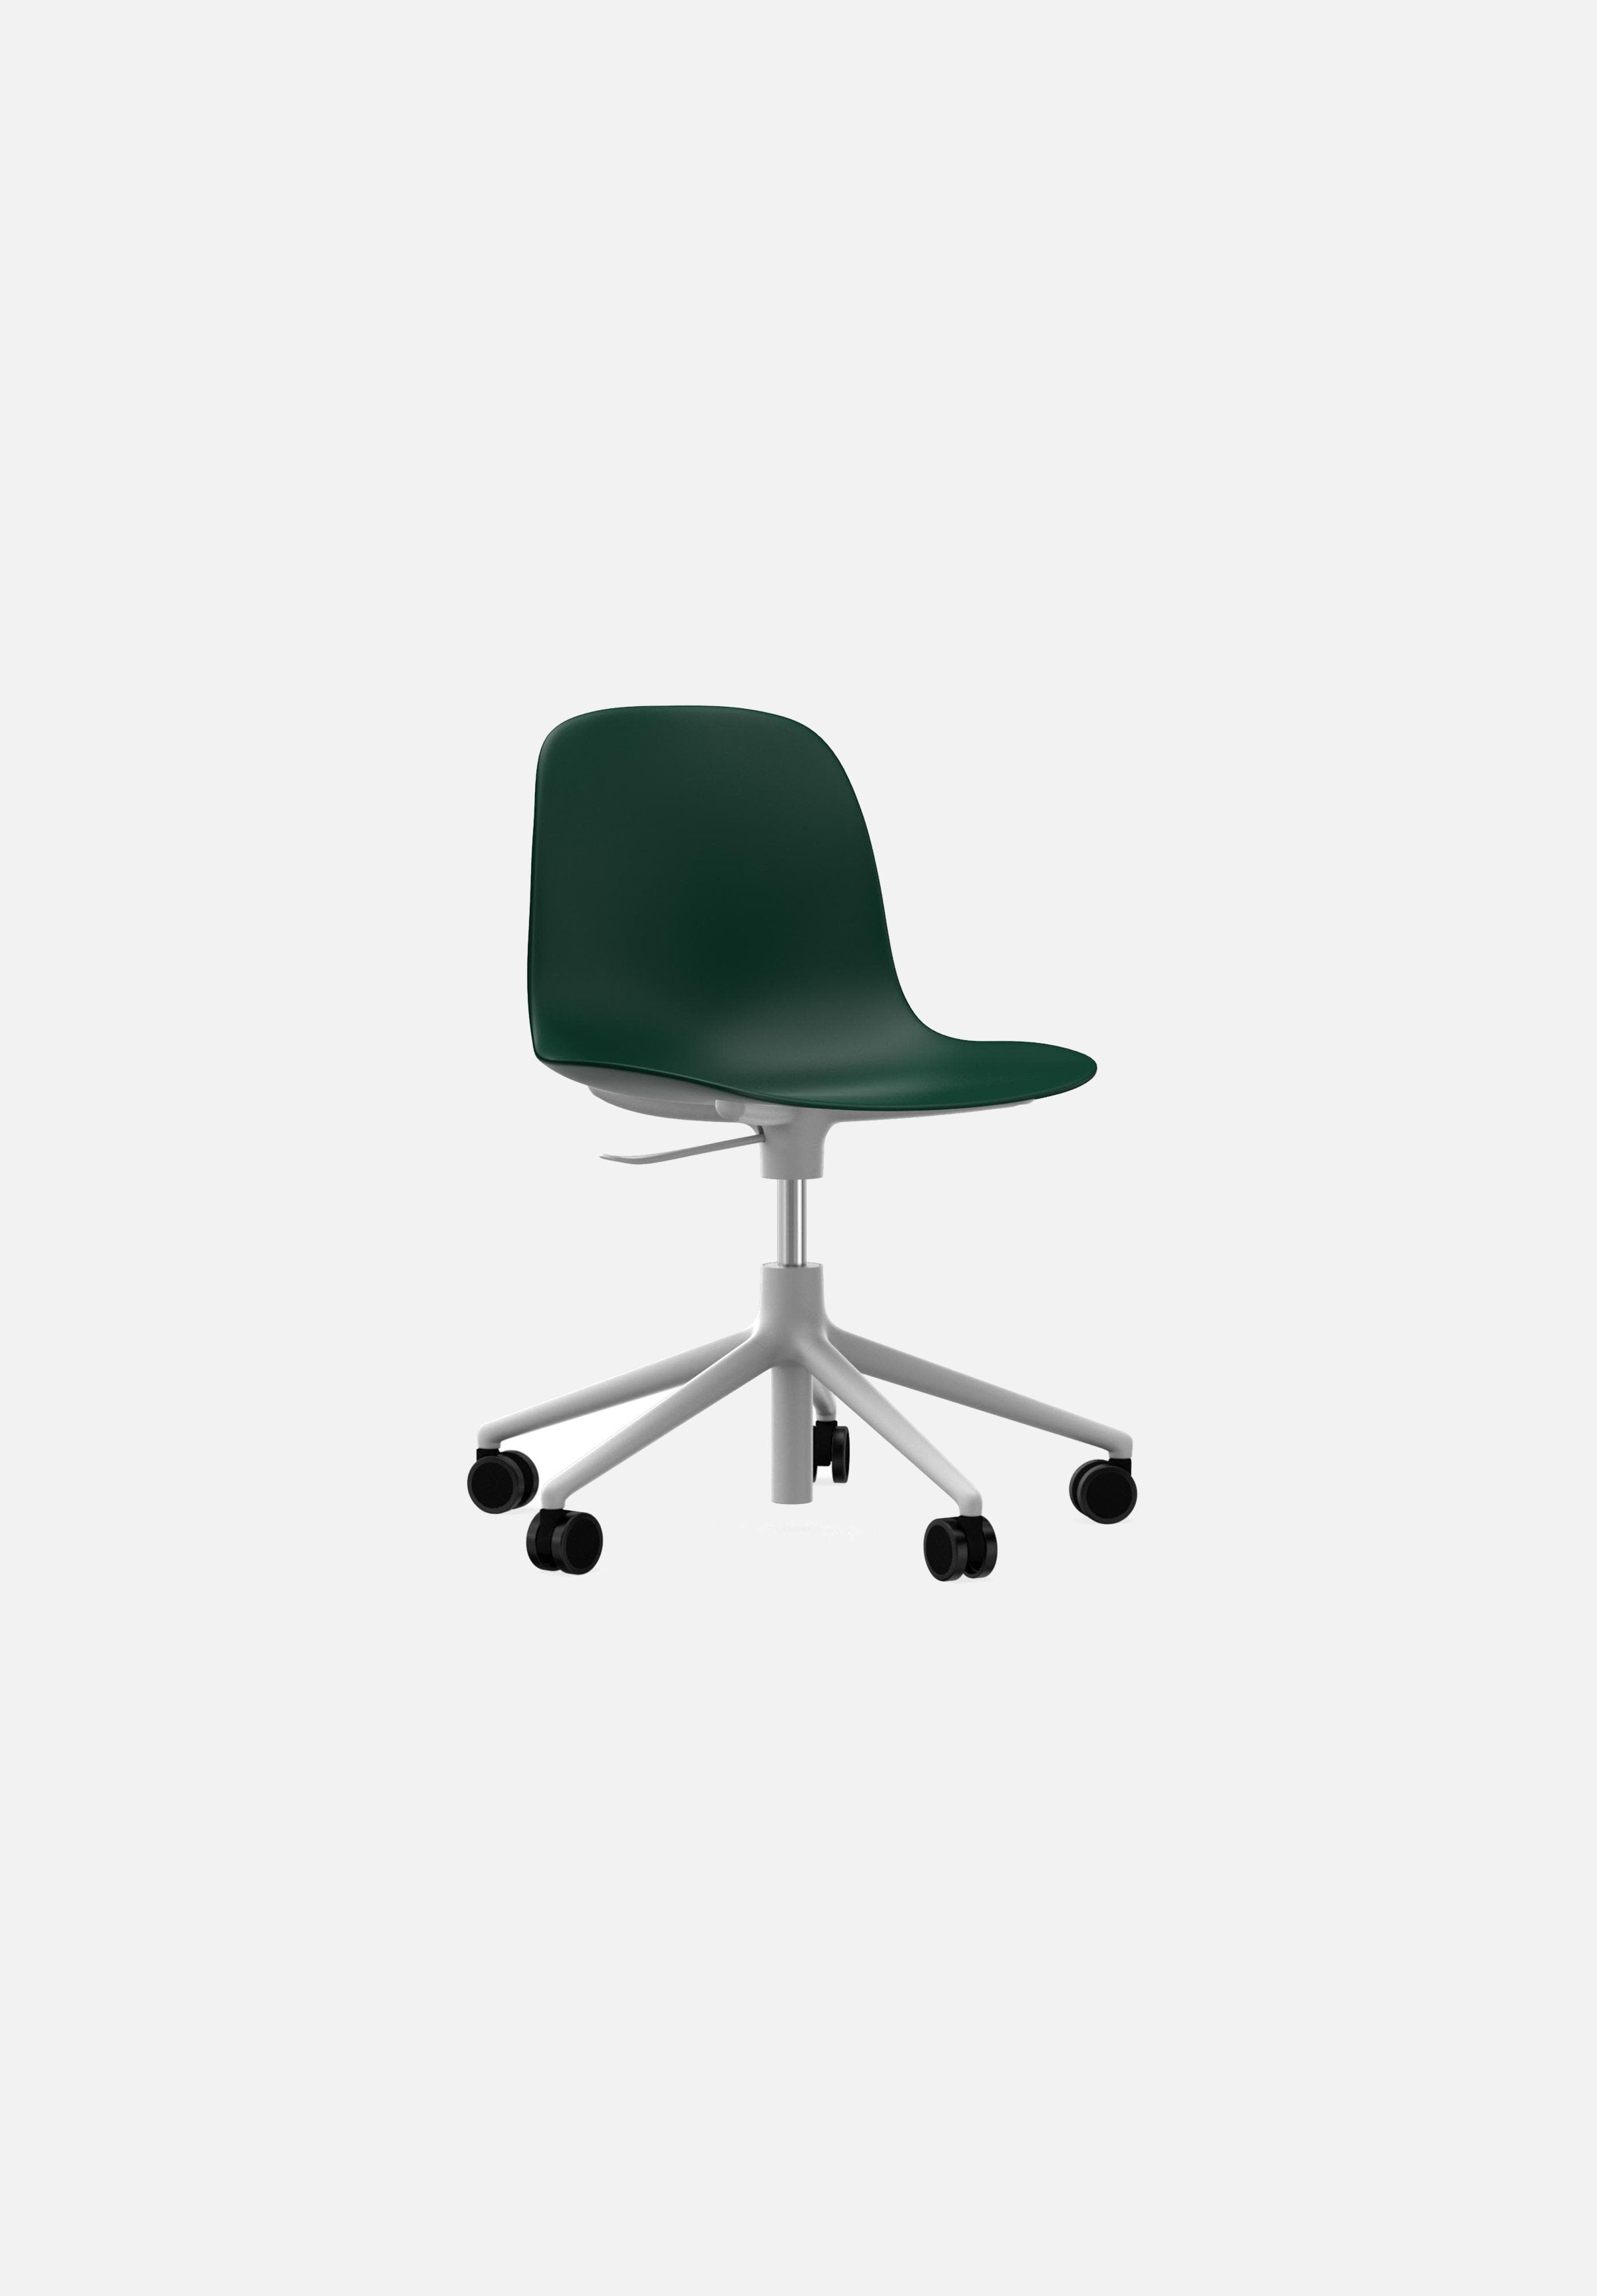 Form Chair — Swivel Gaslift-Simon Legald-Normann Copenhagen-Green-White Aluminum-Average-canada-design-store-danish-denmark-furniture-interior